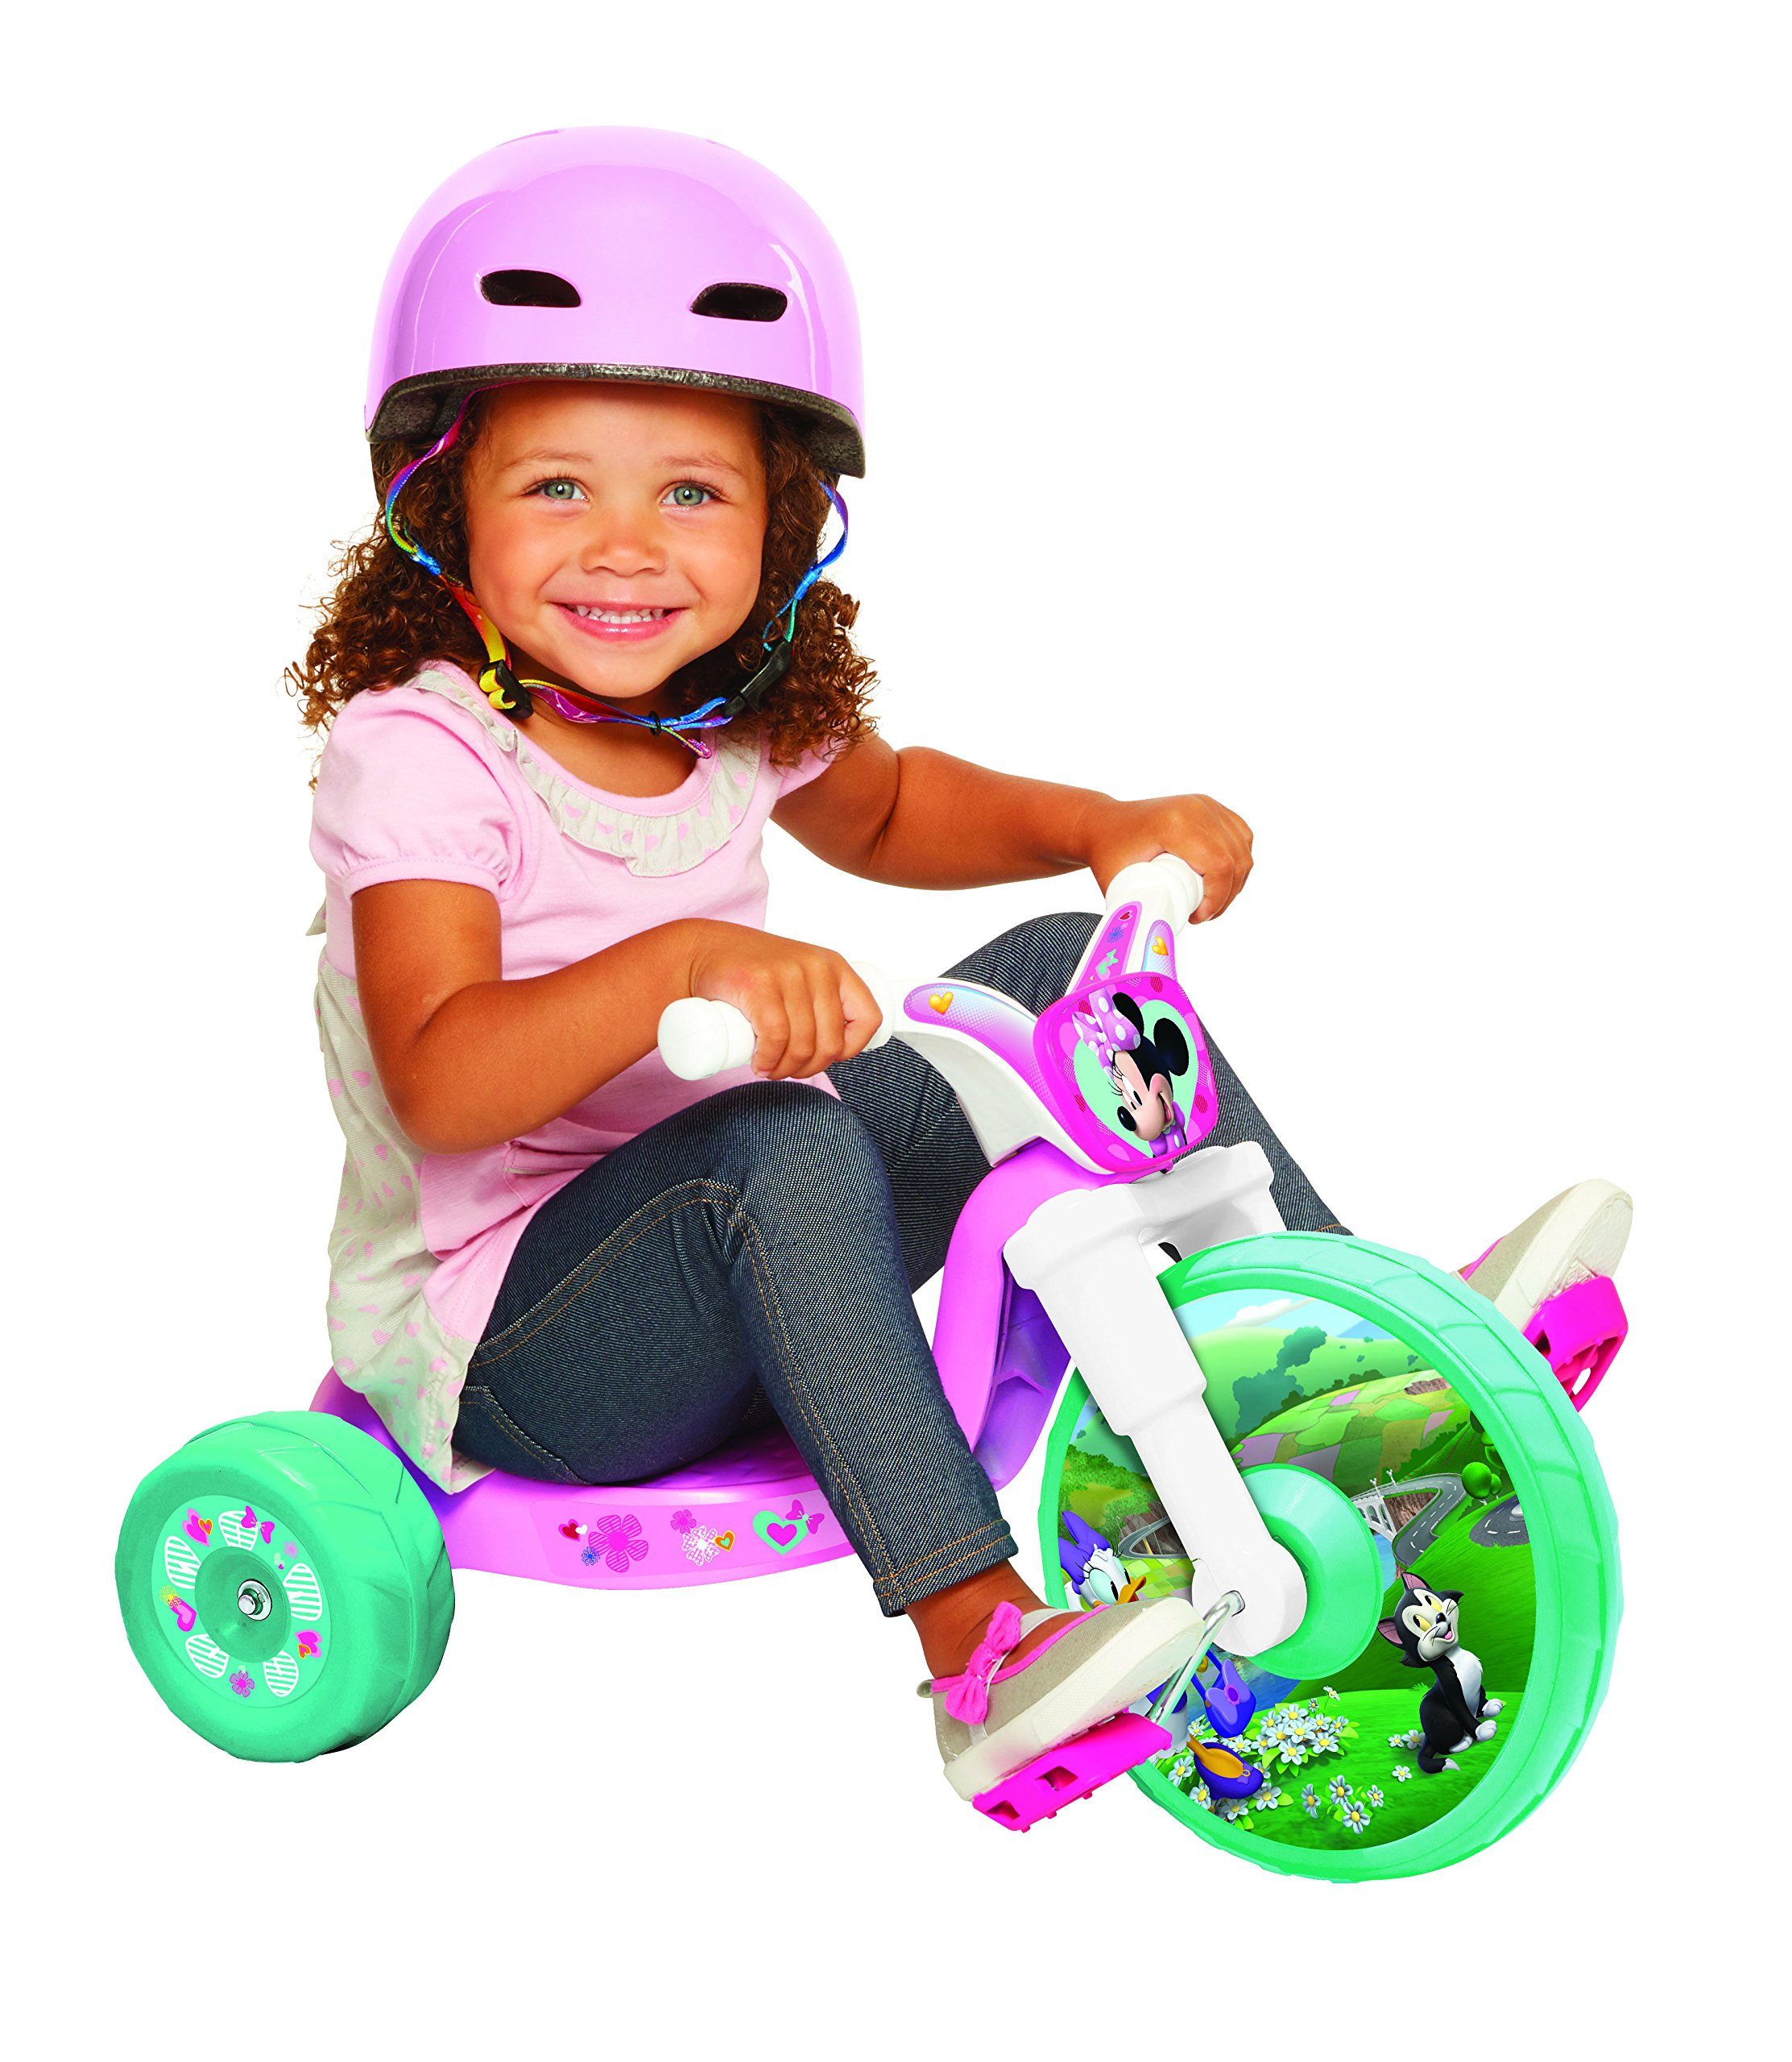 Minnie 10'' Fly Wheel Junior Cruiser 1 Ride-on, Ages 2-4, Pink/White/Teal, 14.25'' W x 14.5'' H x 23.5'' L